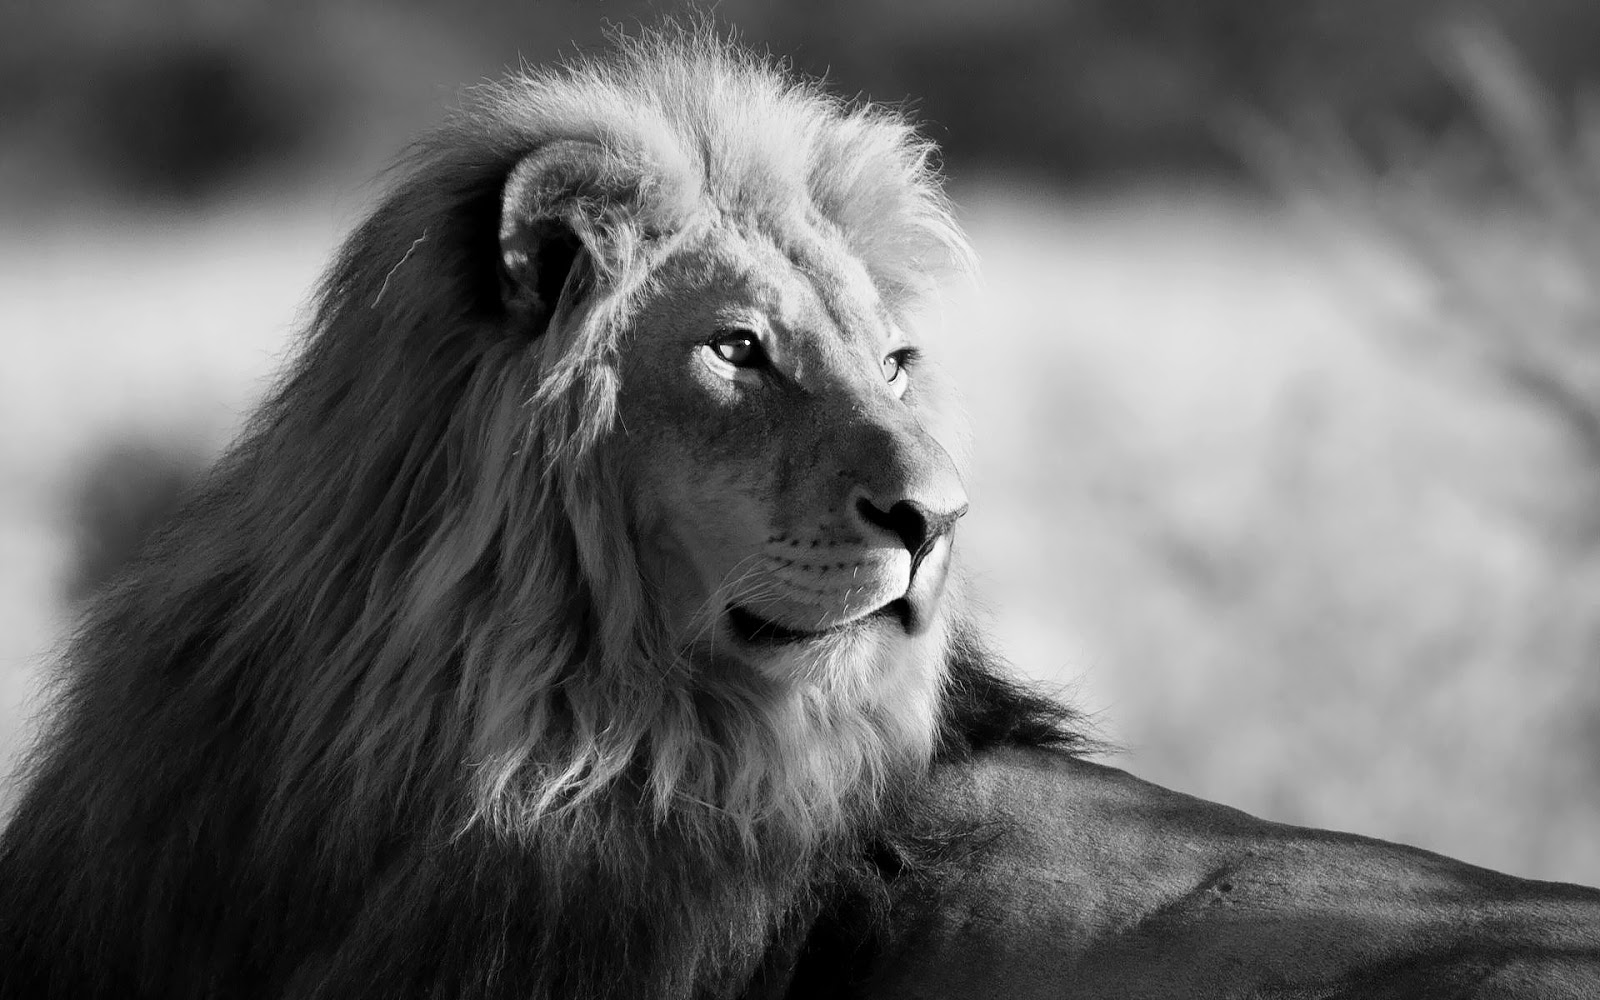 Black And White Wallpaper With Lion Hd Animal Background